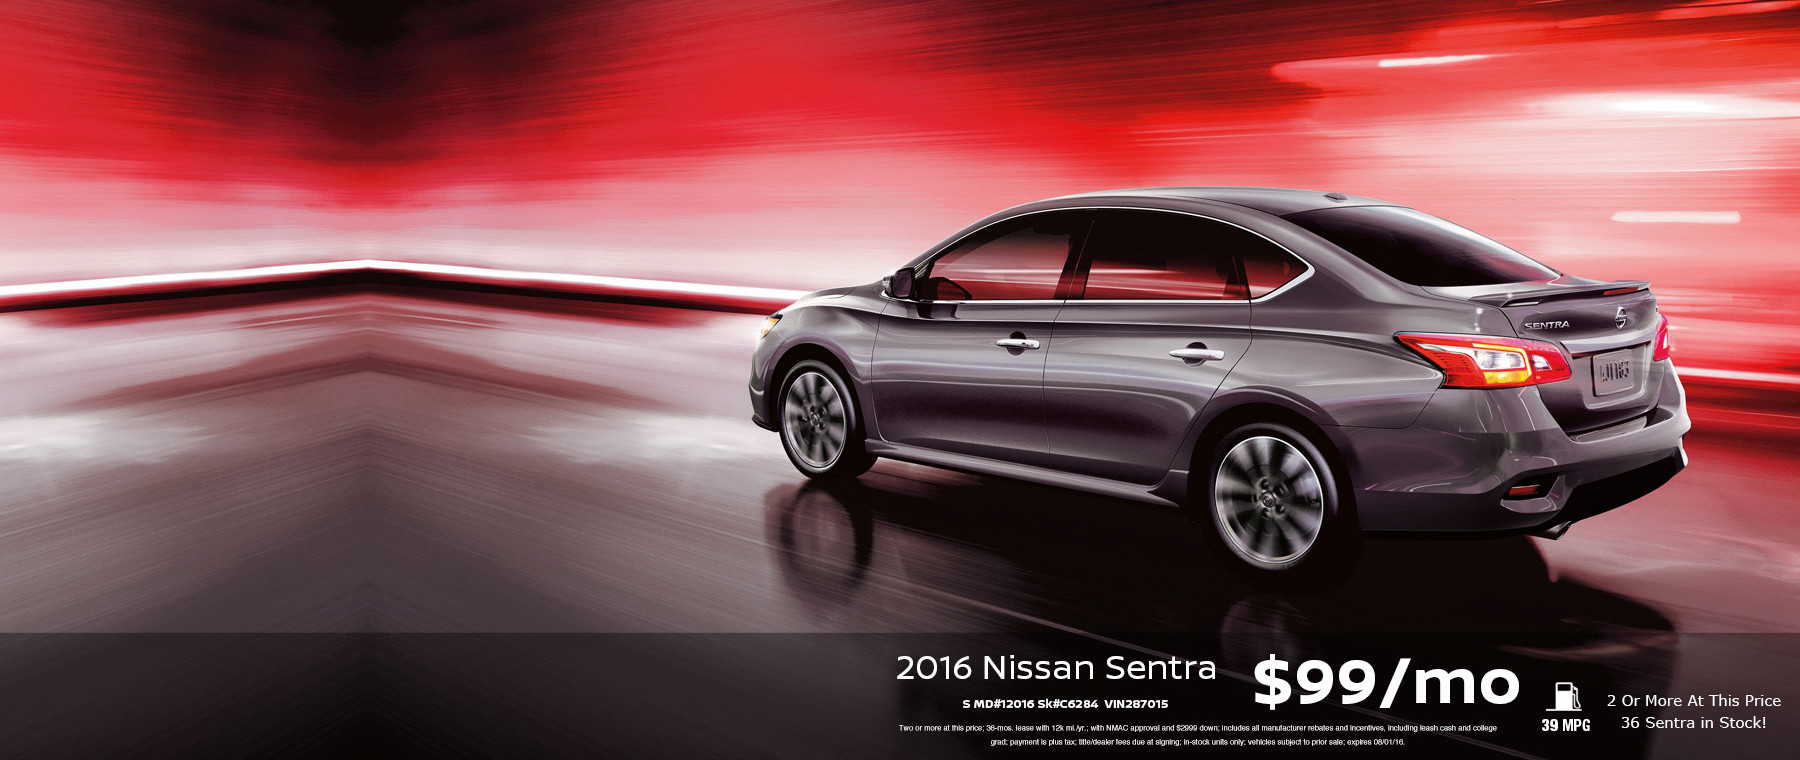 Andy Mohr Nissan Indianapolis 2016 Sentra